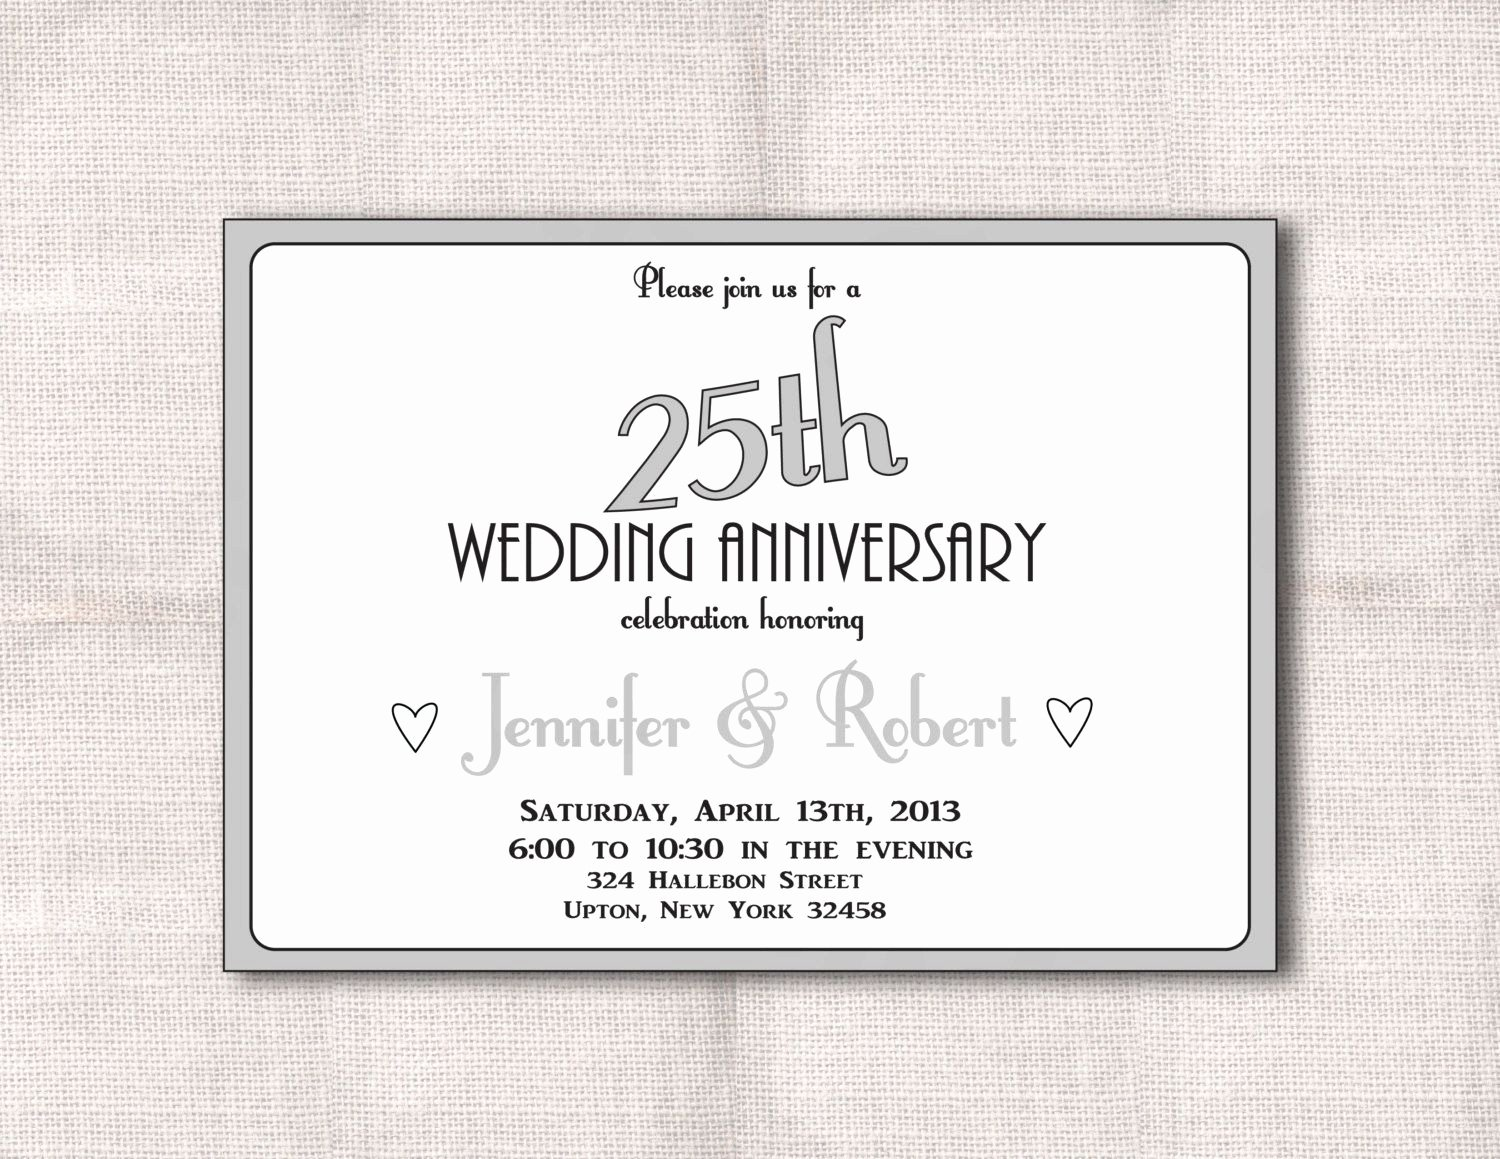 25th Wedding Anniversary Invitations Templates Awesome Surprise 25th Wedding Anniversary Invitations Surprise